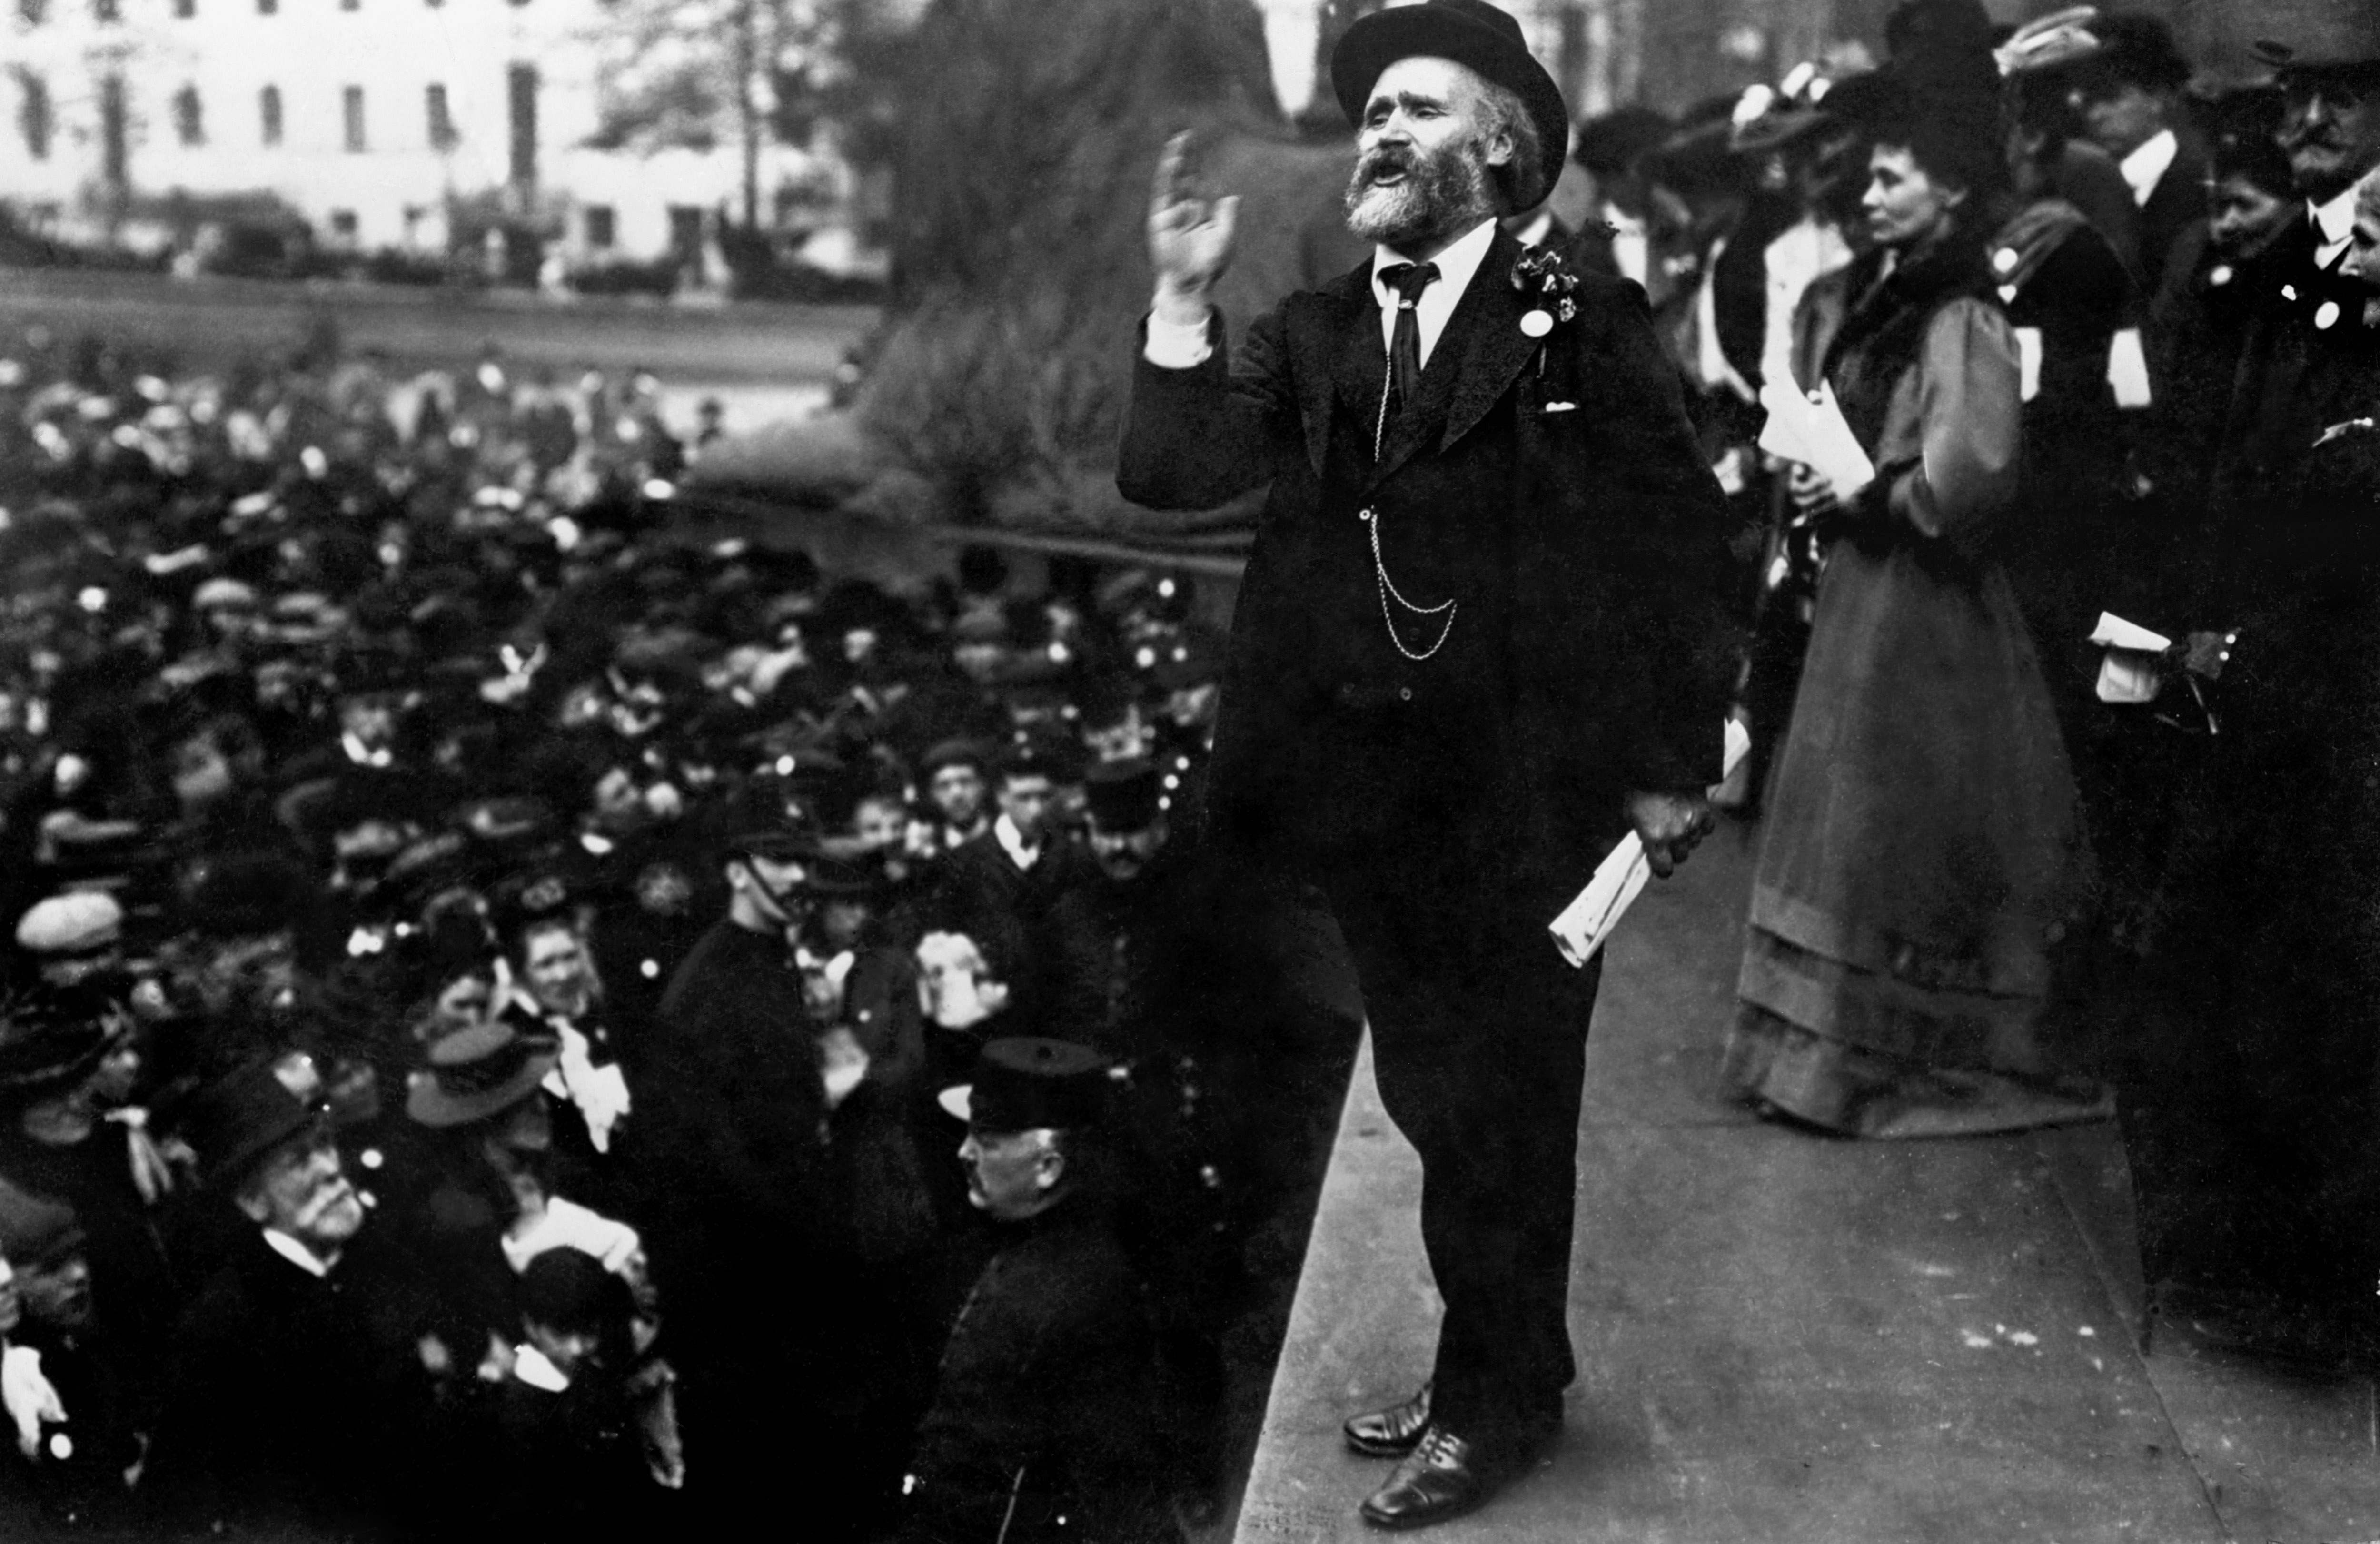 1908: Labour politician Keir Hardie speaking in Trafalgar Square at a Women's Suffrage demonstration. Just behind is the founder of the Women's Social and Political Union, Emmeline Pankhurst.